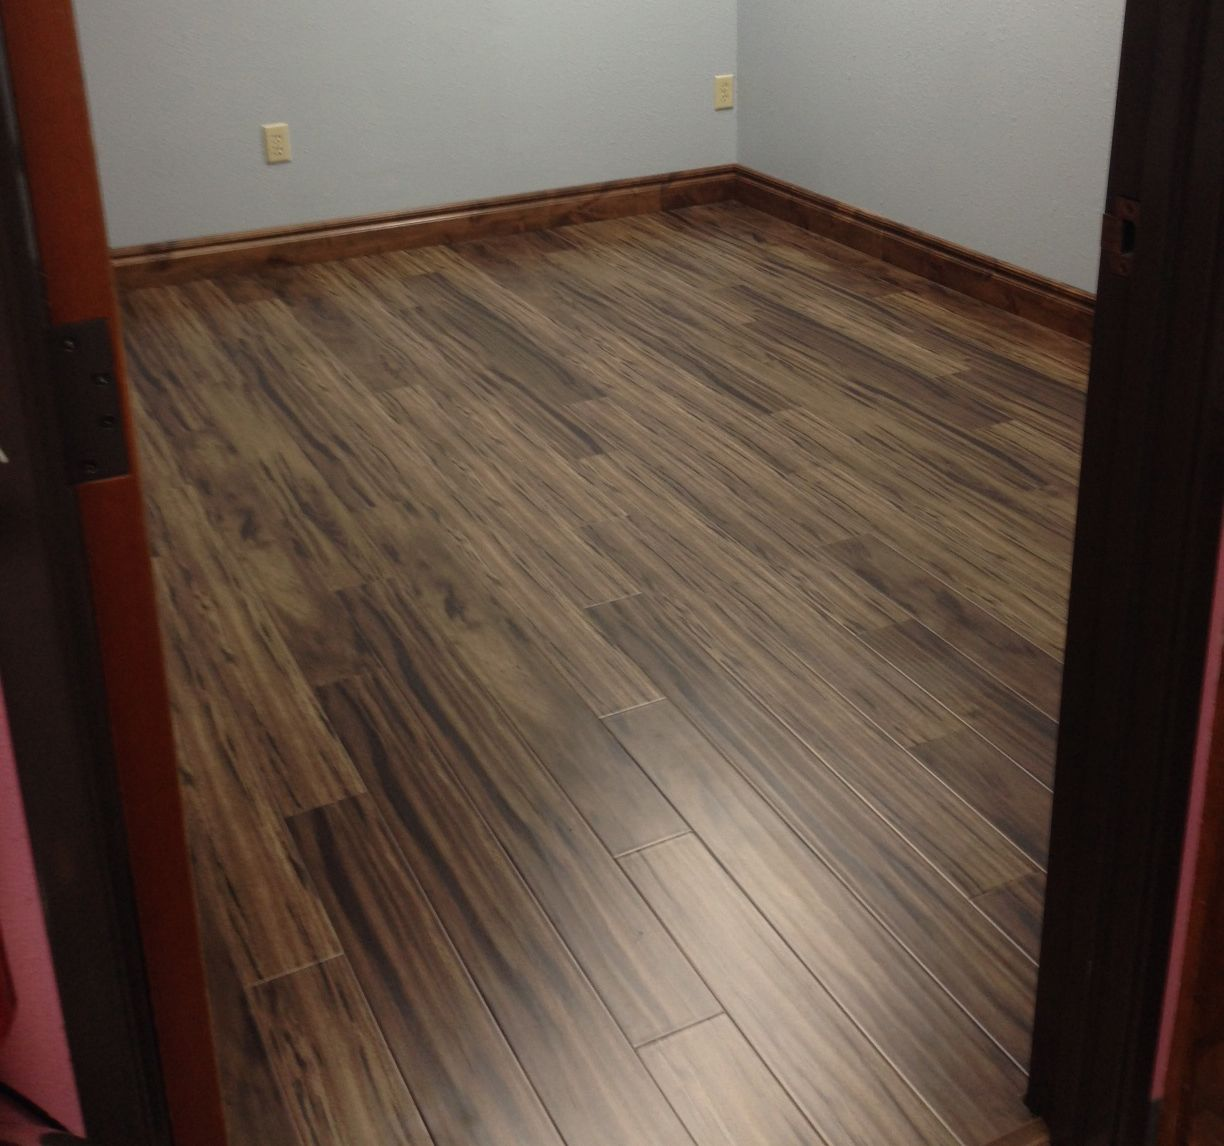 We Used The Fumed African Ironwood Laminate And Quarter Round It Looks Great I Absolutely Love This Flooring Fumed Af Flooring Trends Flooring Ironwood